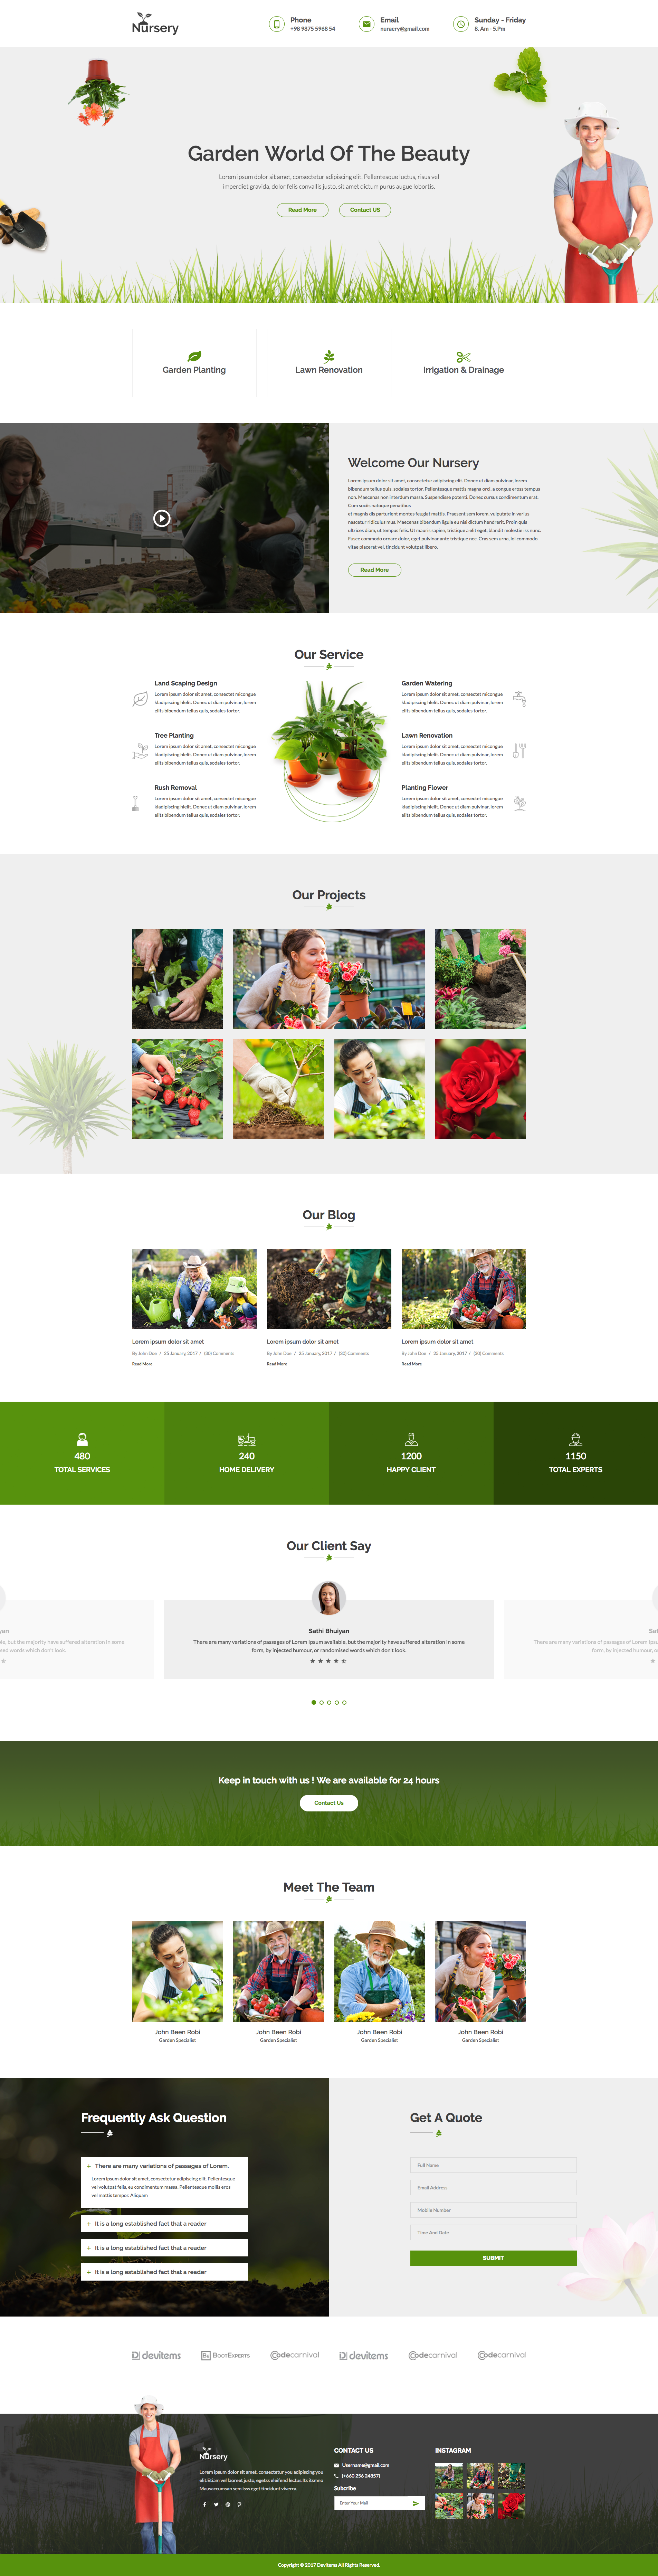 Nursery - Gardening and Landscaping HTML Template. This is designed on garden park logos, garden club logos, garden logos design, garden nursery logos,